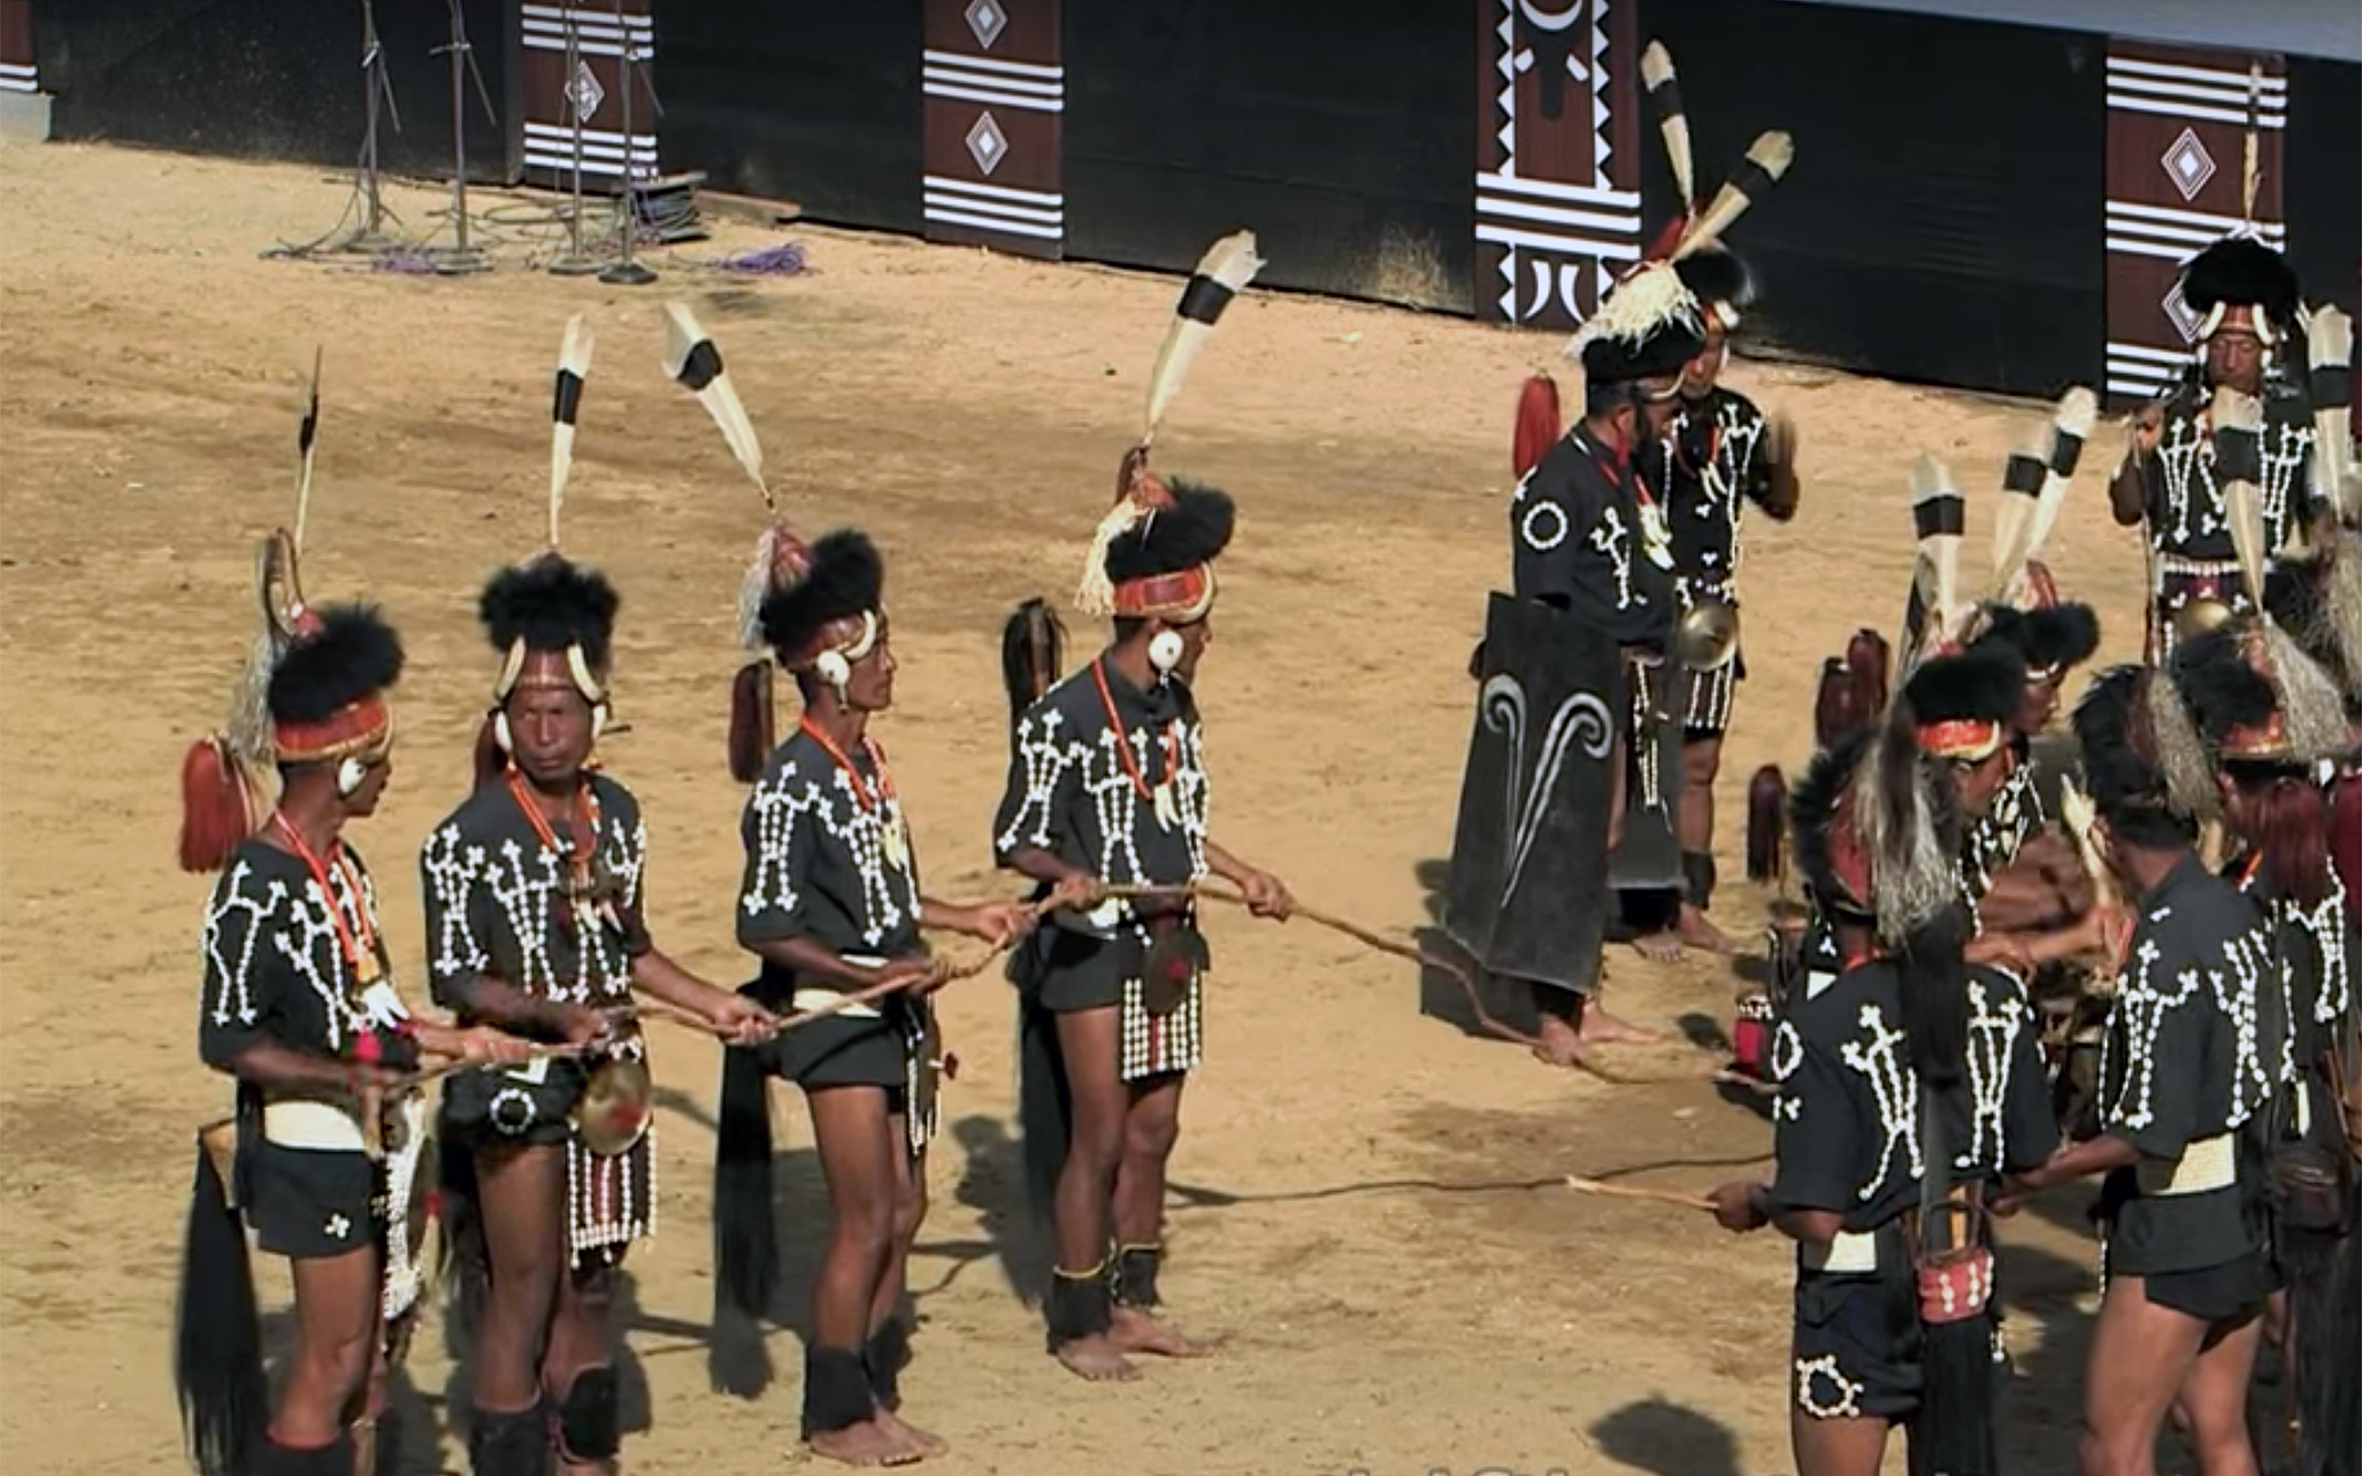 149.Chang Lo / India - Chang Lo dance is performed by Chang tribe of Nagaland, India. They perform the dance to celebrate their victory against enemies. It is a three-day festival where different forms of theatre and performing arts are performed.